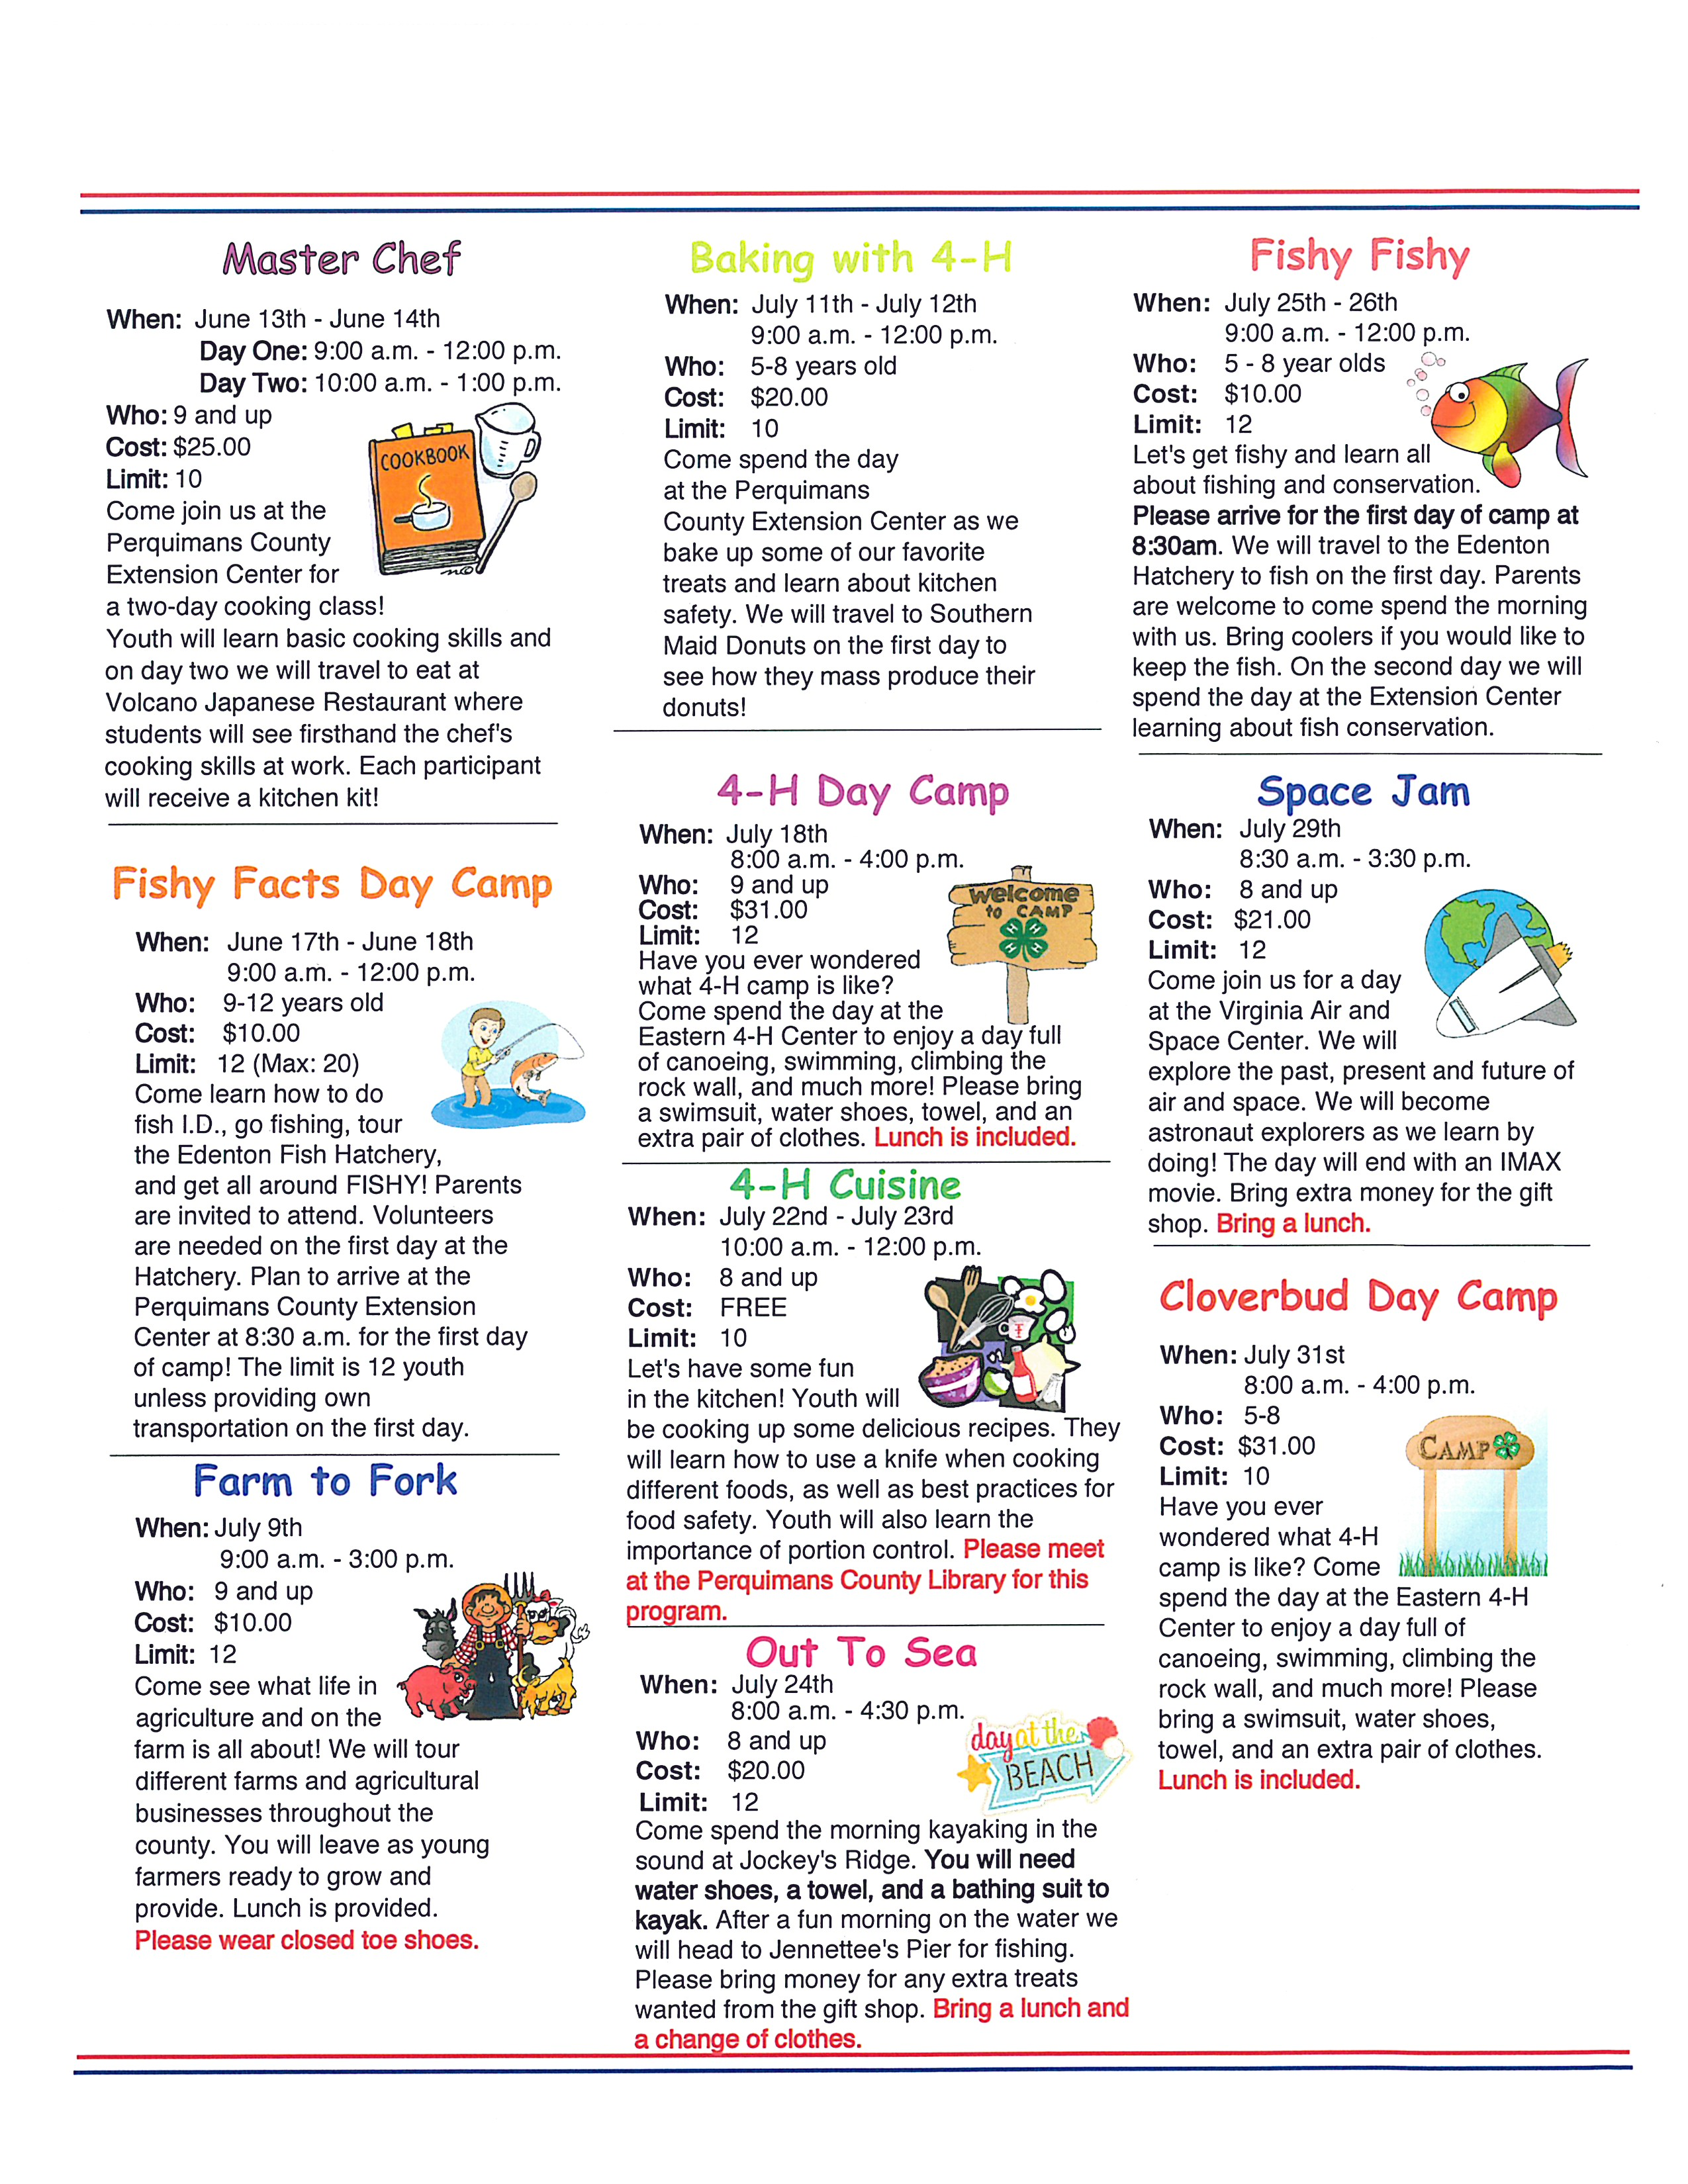 Summer Ventures page 2 image